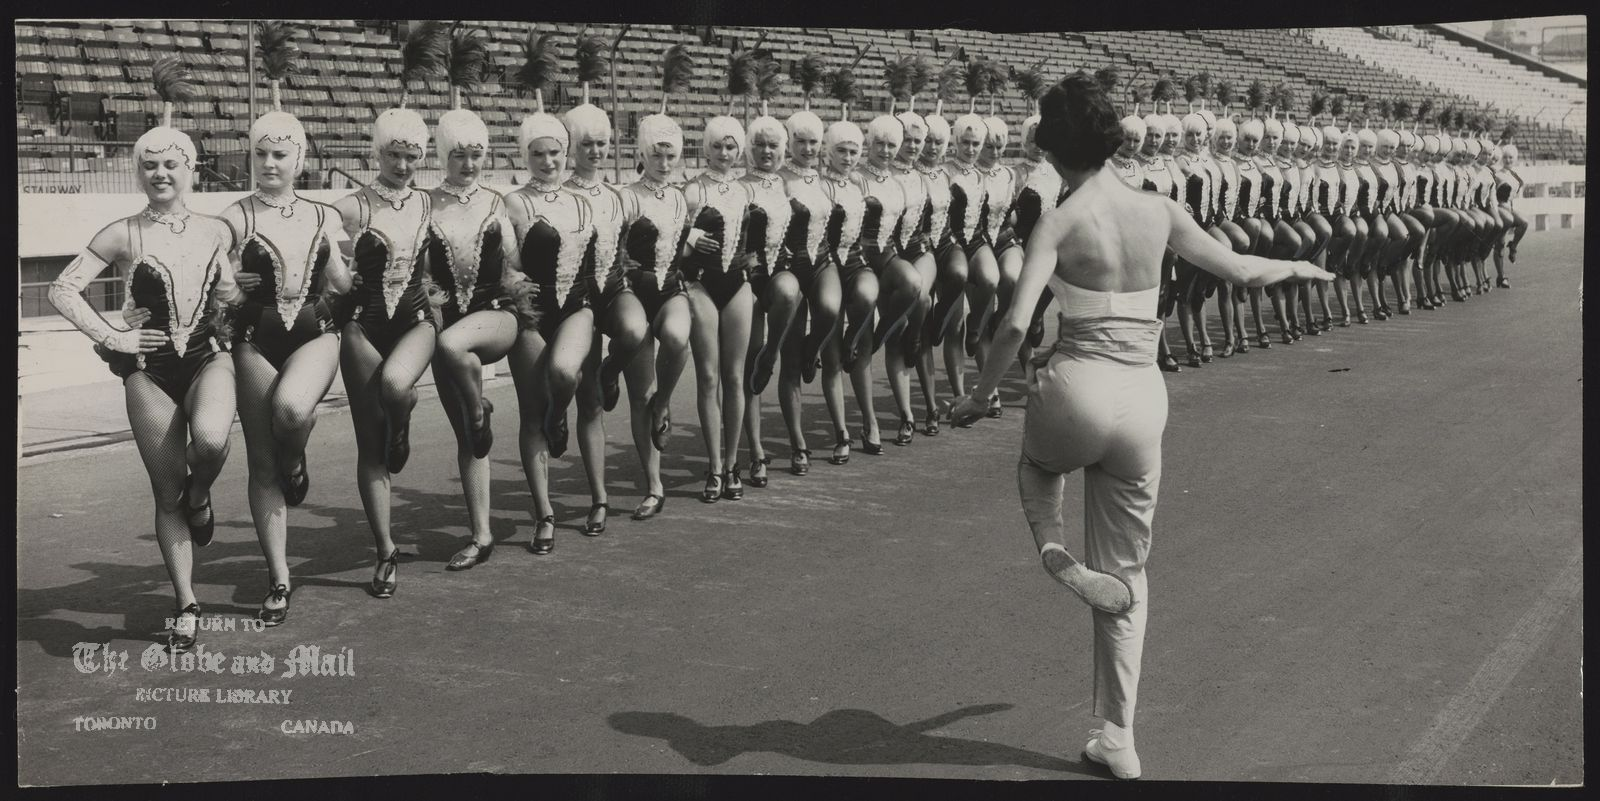 CNE GRANDSTAND SHOW JULY 30, 1957 -- JUST 3 WEEKS TO GO BEFORE OPENING SHOW -- Fifty gorgeous girls highkick their way through practice session for grandstand show which opens in three weeks. The Canadettes wear costumes of satin latex and nylon net as Midge Arthur, choreographer and wife of Jack Arthur, show's producer, shows them how NOT to dance. Photo by Harry McLorinan / The Globe and Mail Originally published July 31, 1957, page A7.